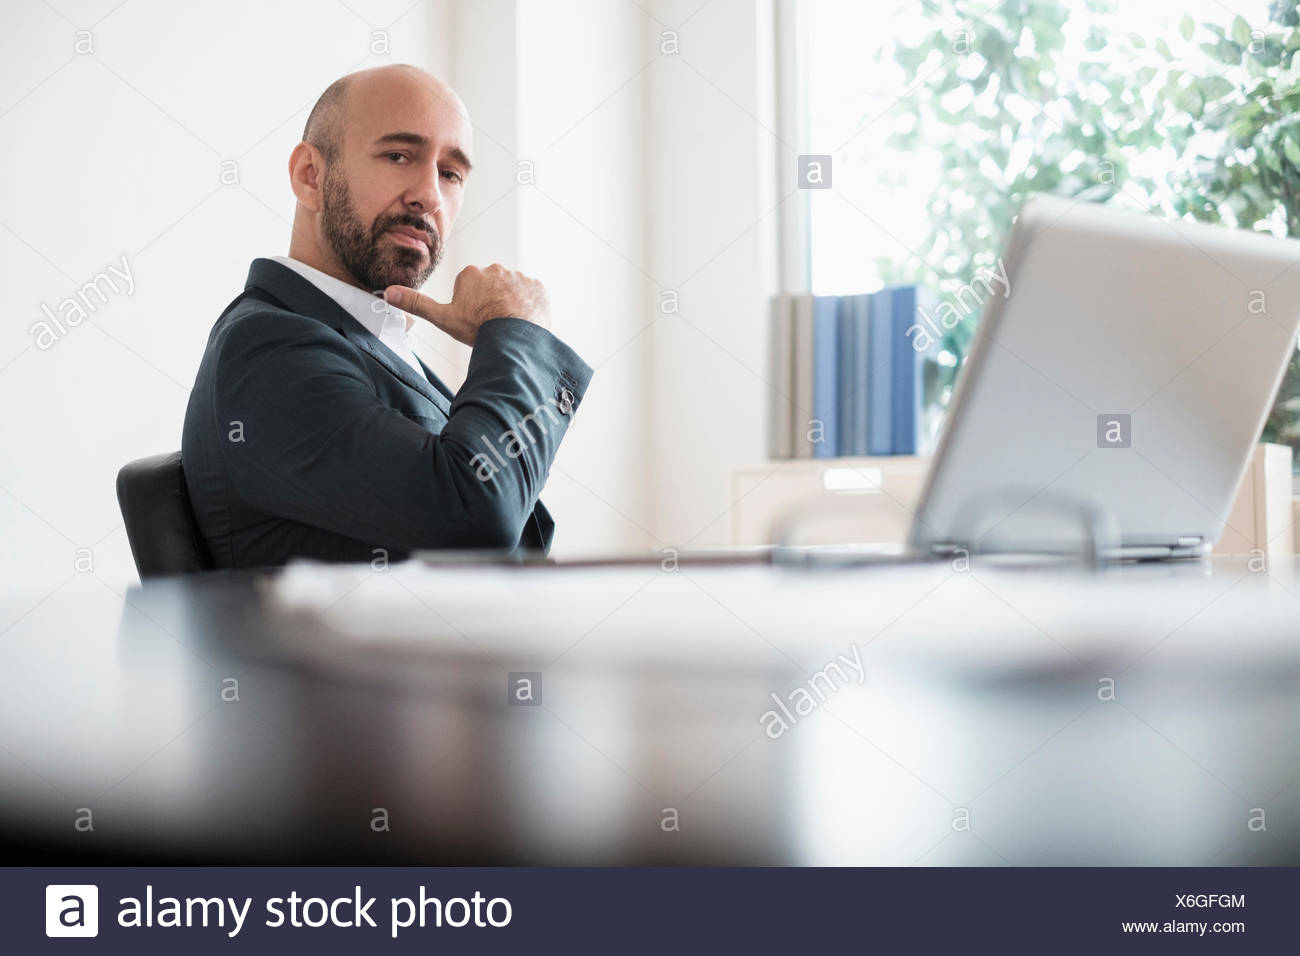 Serious businessman sitting at desk in office Photo Stock